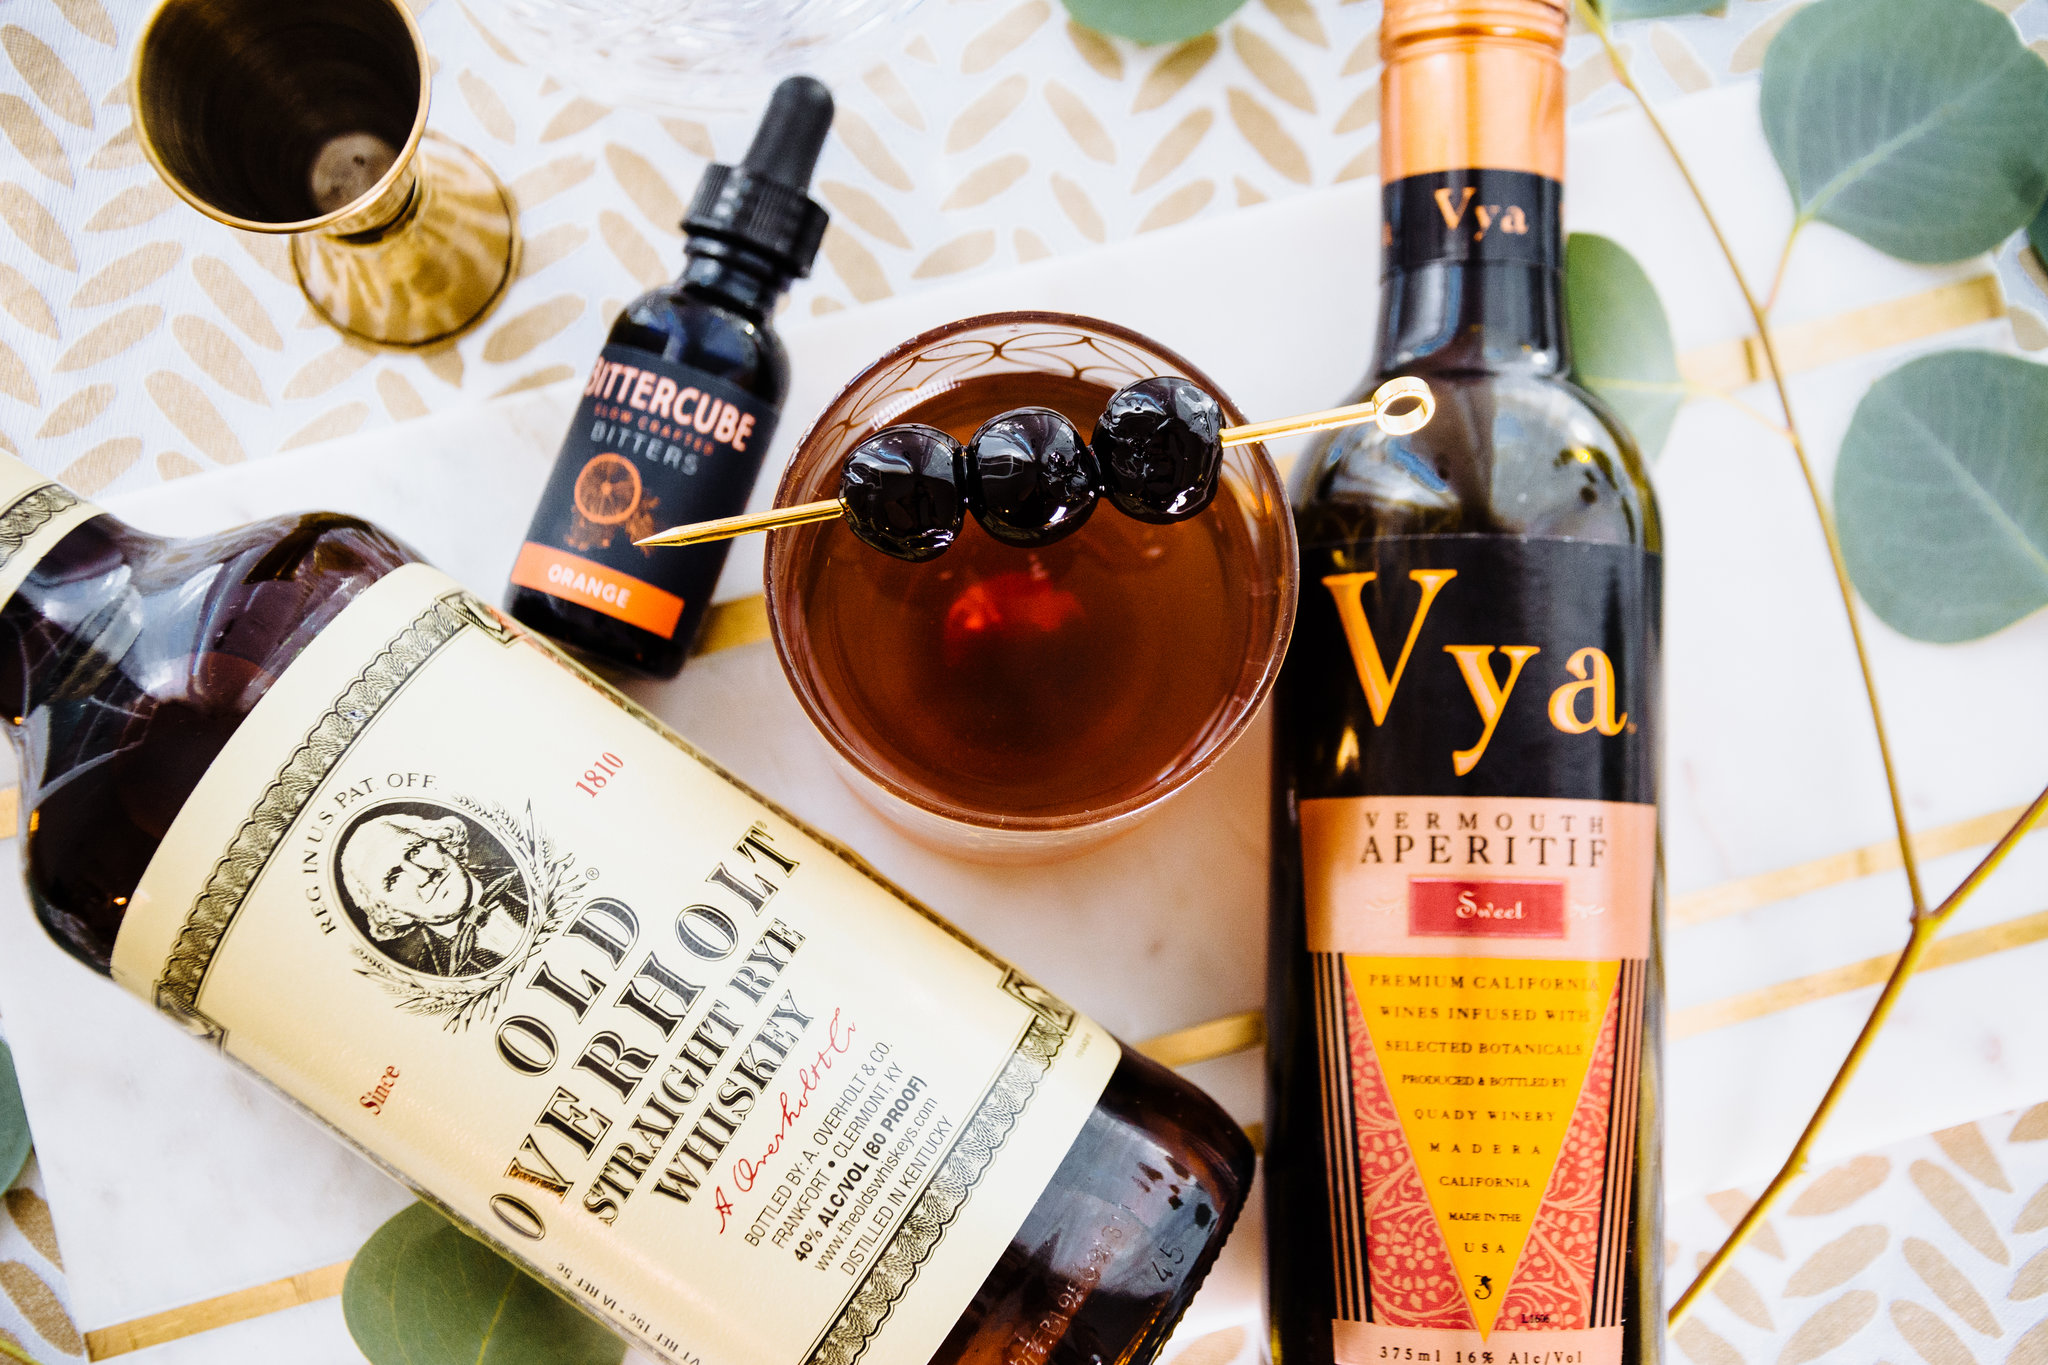 Bottle of Vya Sweet Vermouth, Bittercube bitters and Old Overholt Rye Whiskey lying on a table next to a Manhattan cocktail with maraschino cherry garnish.